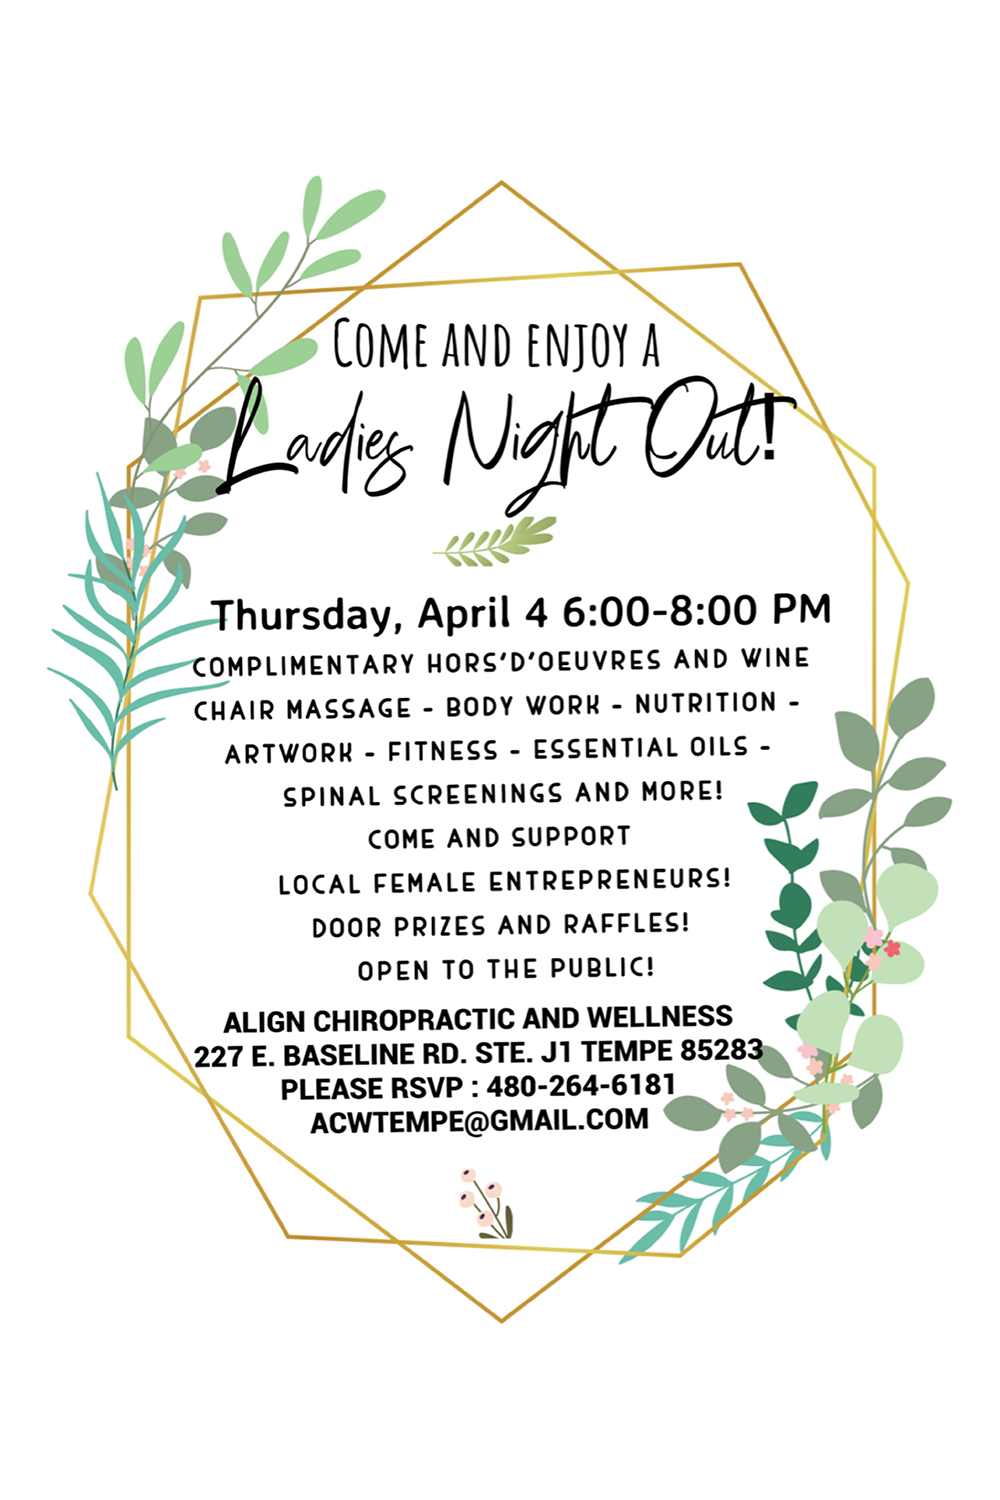 Ladies Night Align Chiropractic & Wellness